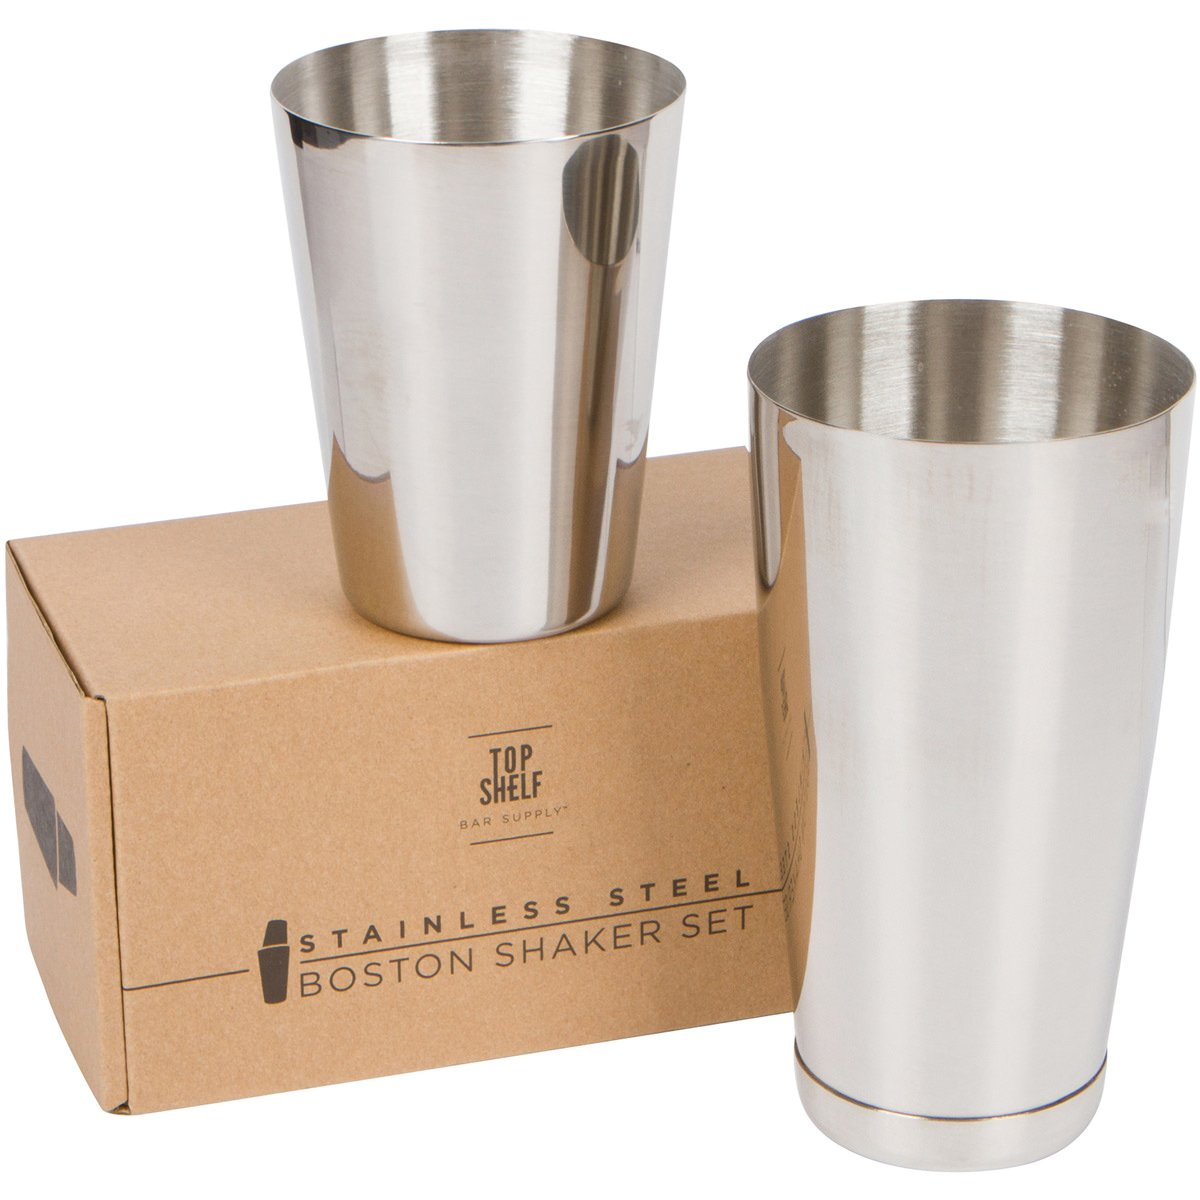 Premium Cocktail Shaker Set: Two-Piece Pro Boston Shaker Set. Unweighted 18oz & Weighted 28oz Martini Drink Shaker made from Stainless Steel 304 by Top Shelf Bar Supply